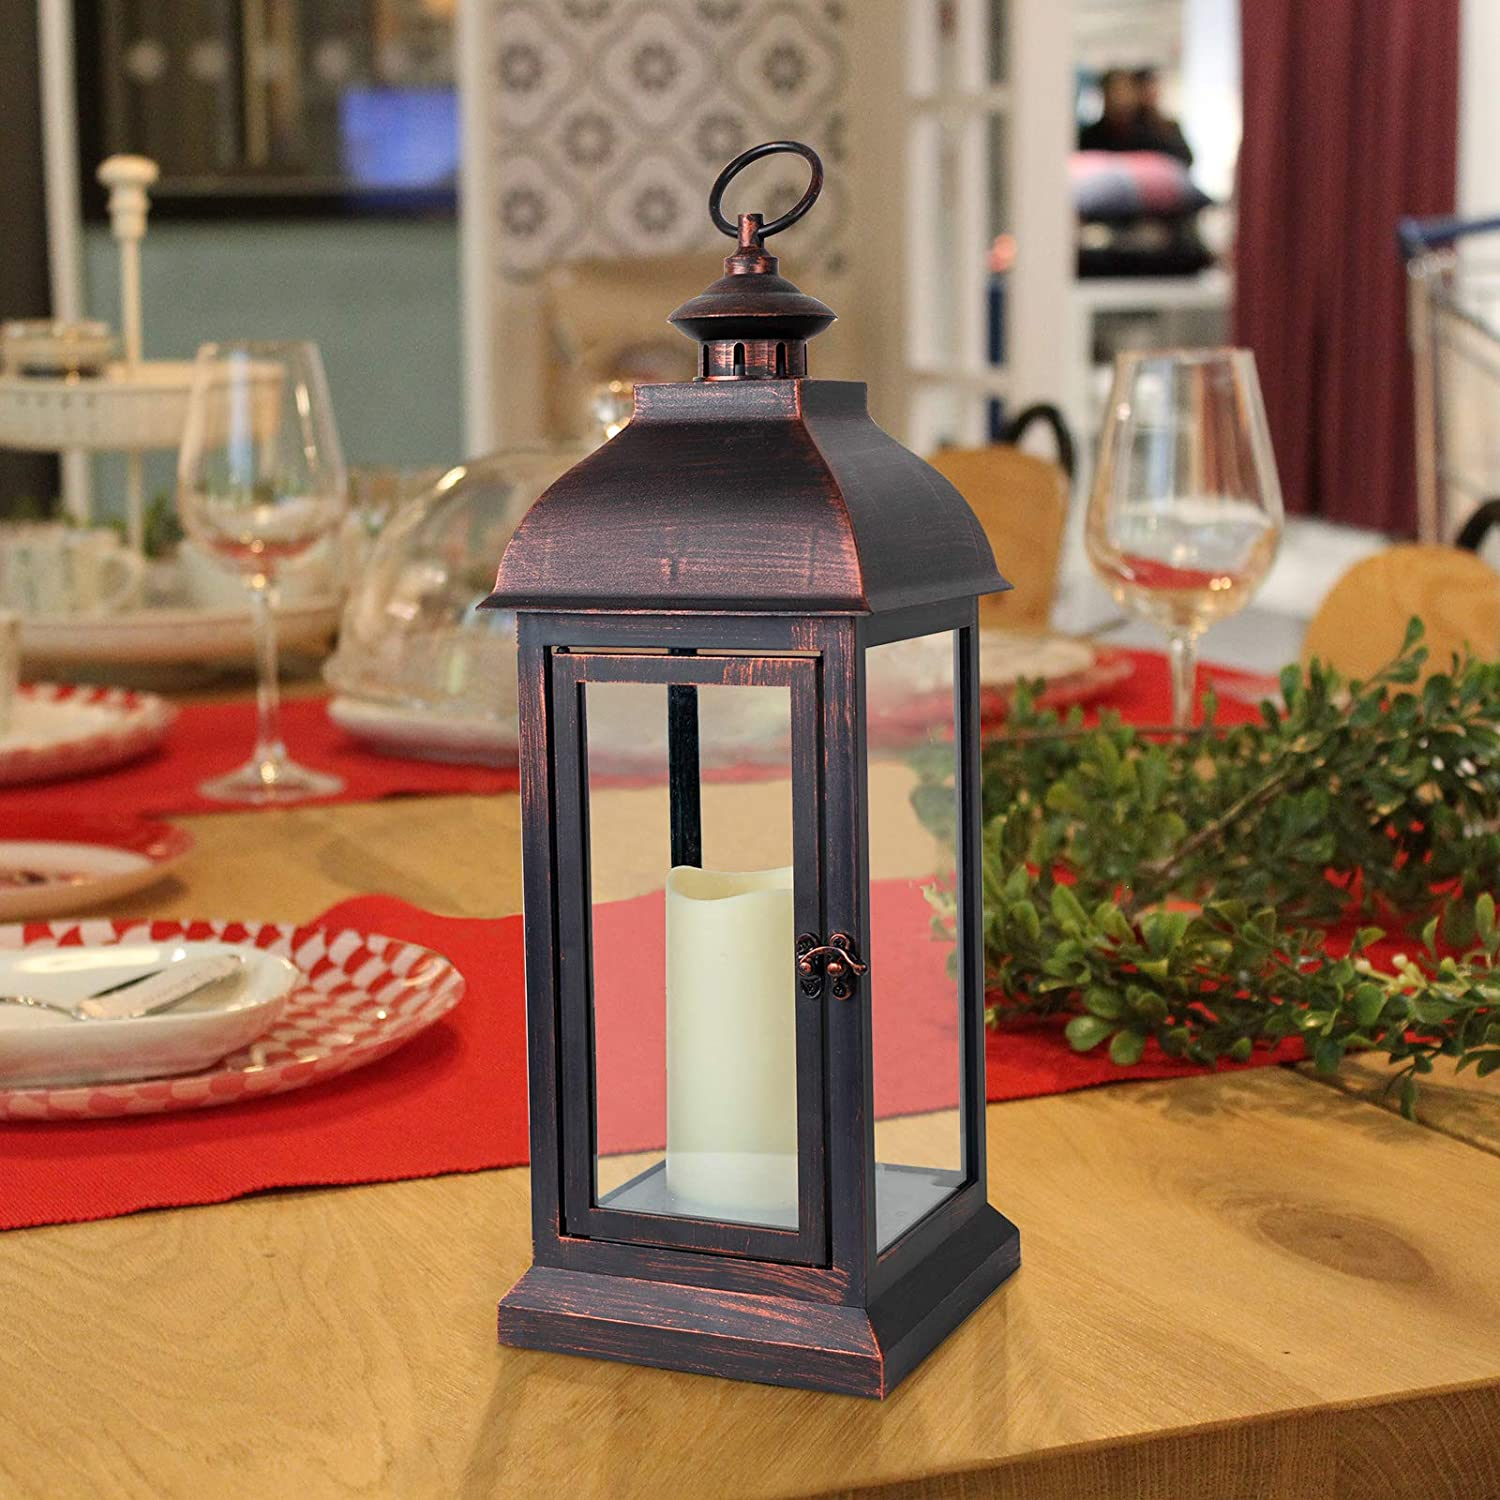 Decorative Candle Lantern with Timer Flameless Candle for 16''H Lamp Outdoor and Indoor Hanging,Table,Unique Eaves Design Waterproof (Bronze Paint)